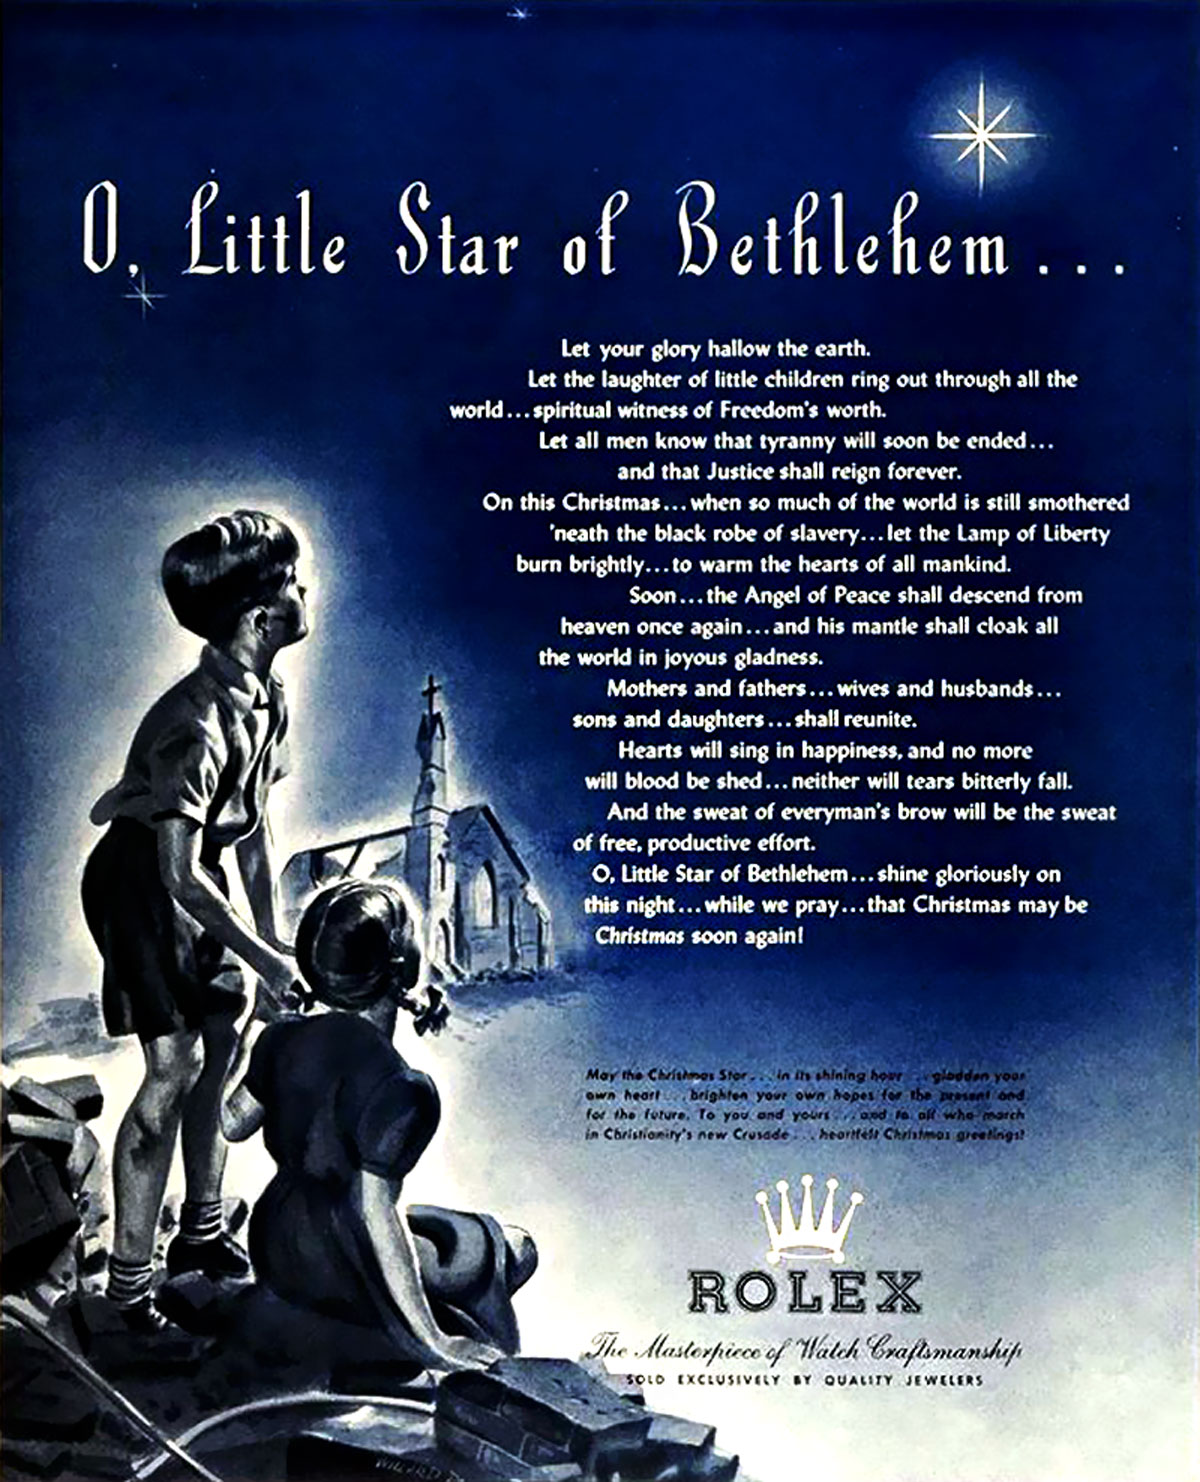 1943-Rolex-O-Little-Star-of-Bethlehem-.jpg